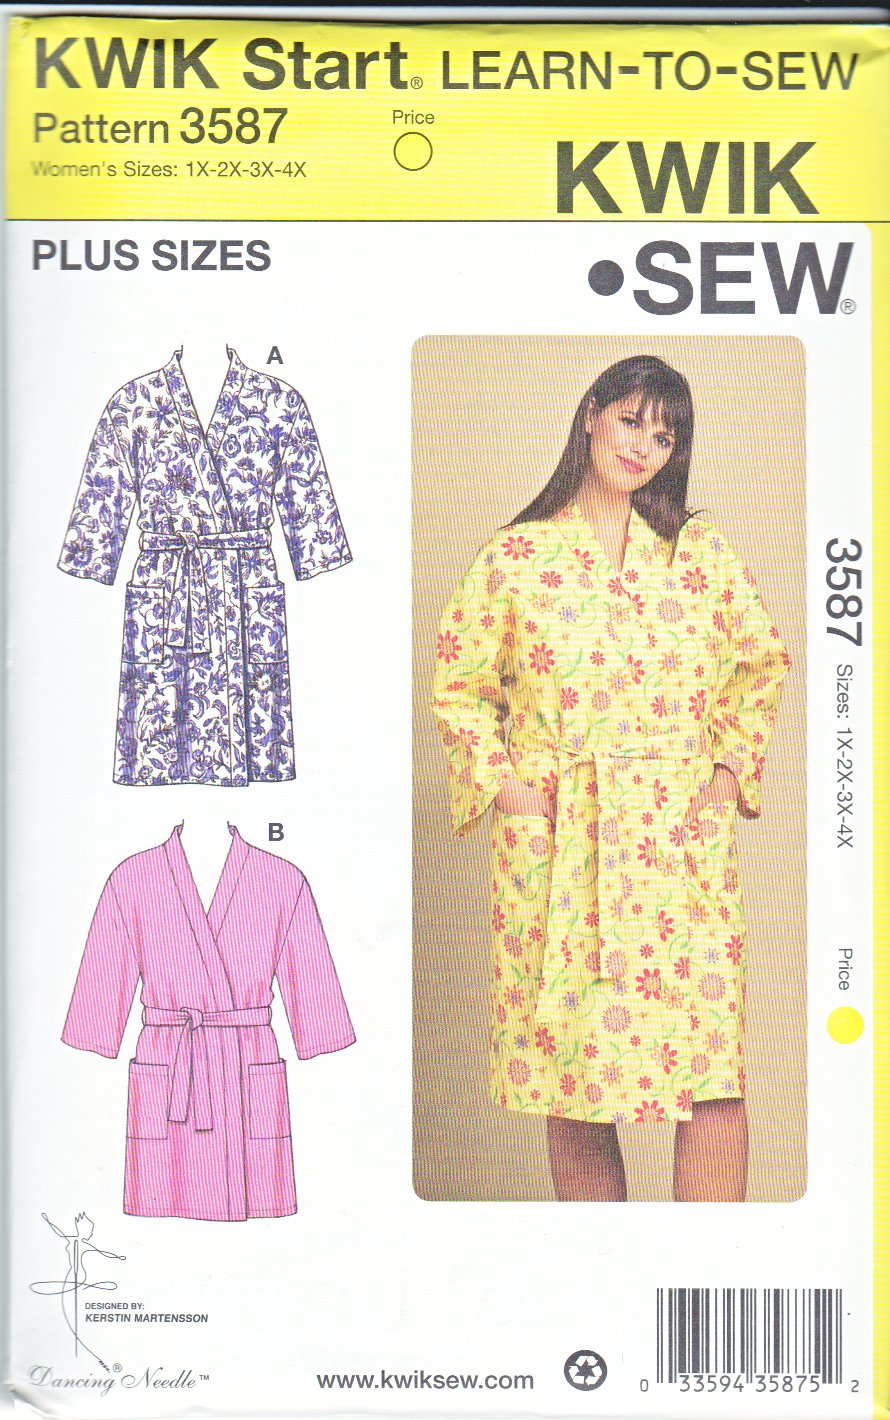 Kwik Sew Sewing Pattern 3587 Women's Plus Size 1X-4X (approx 22W-32W) Easy Front Wrap Robe